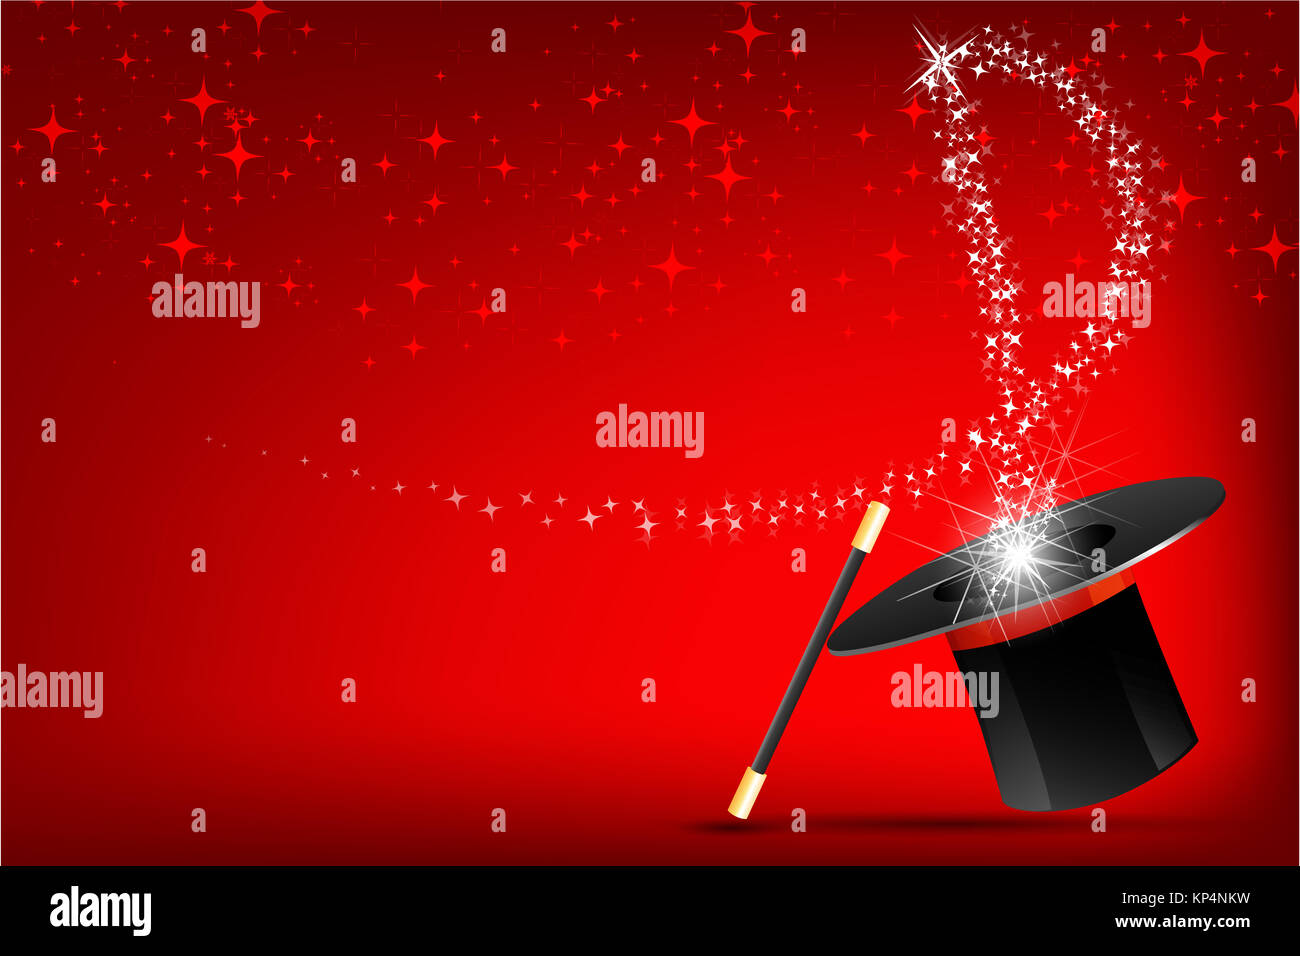 illustration of magic hat and stick on abstract background - Stock Image